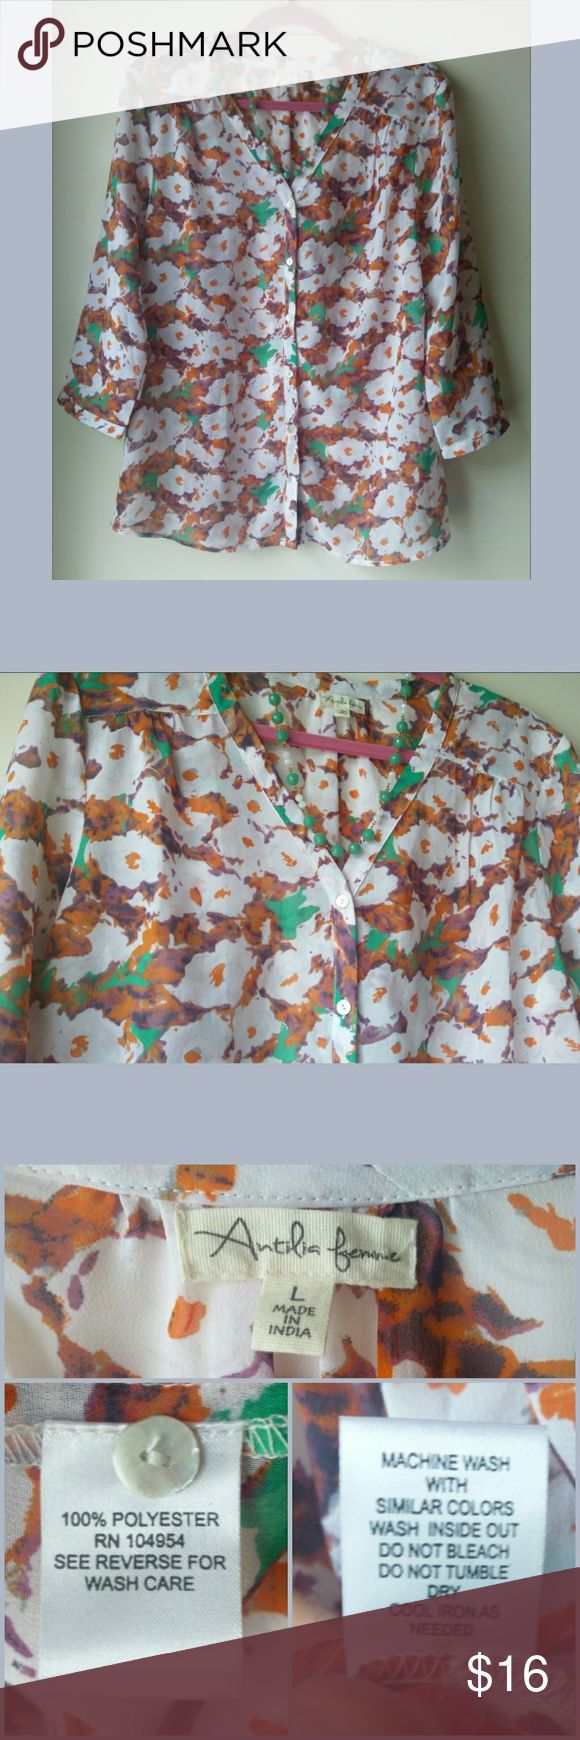 "Floral Blouse Very good used condition floral blouse. Gauzy, lightweight, and semi-sheer. The colors in this make it very versatile! Measures: 22"" armpit to armpit, 18.5"" sleeves, 28"" from shoulder to hem. The cut of this blouse is very straight and does not flare out at the hip. Probably better suited to a less curvy body type. Antilia Femme Tops Blouses"